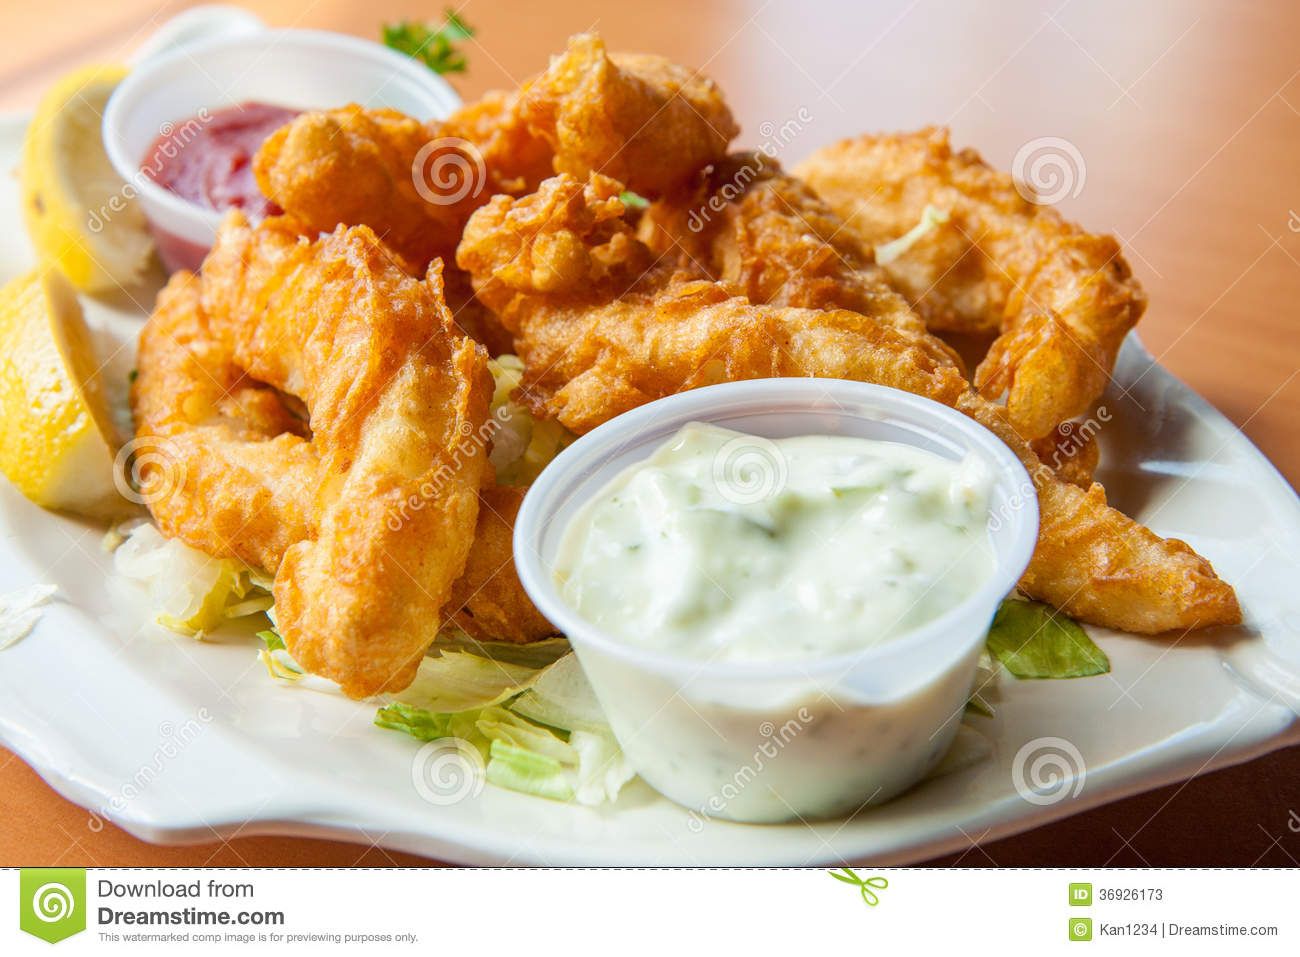 Fried Calamari With Tartar Sauce Stock Image - Image: 36926173